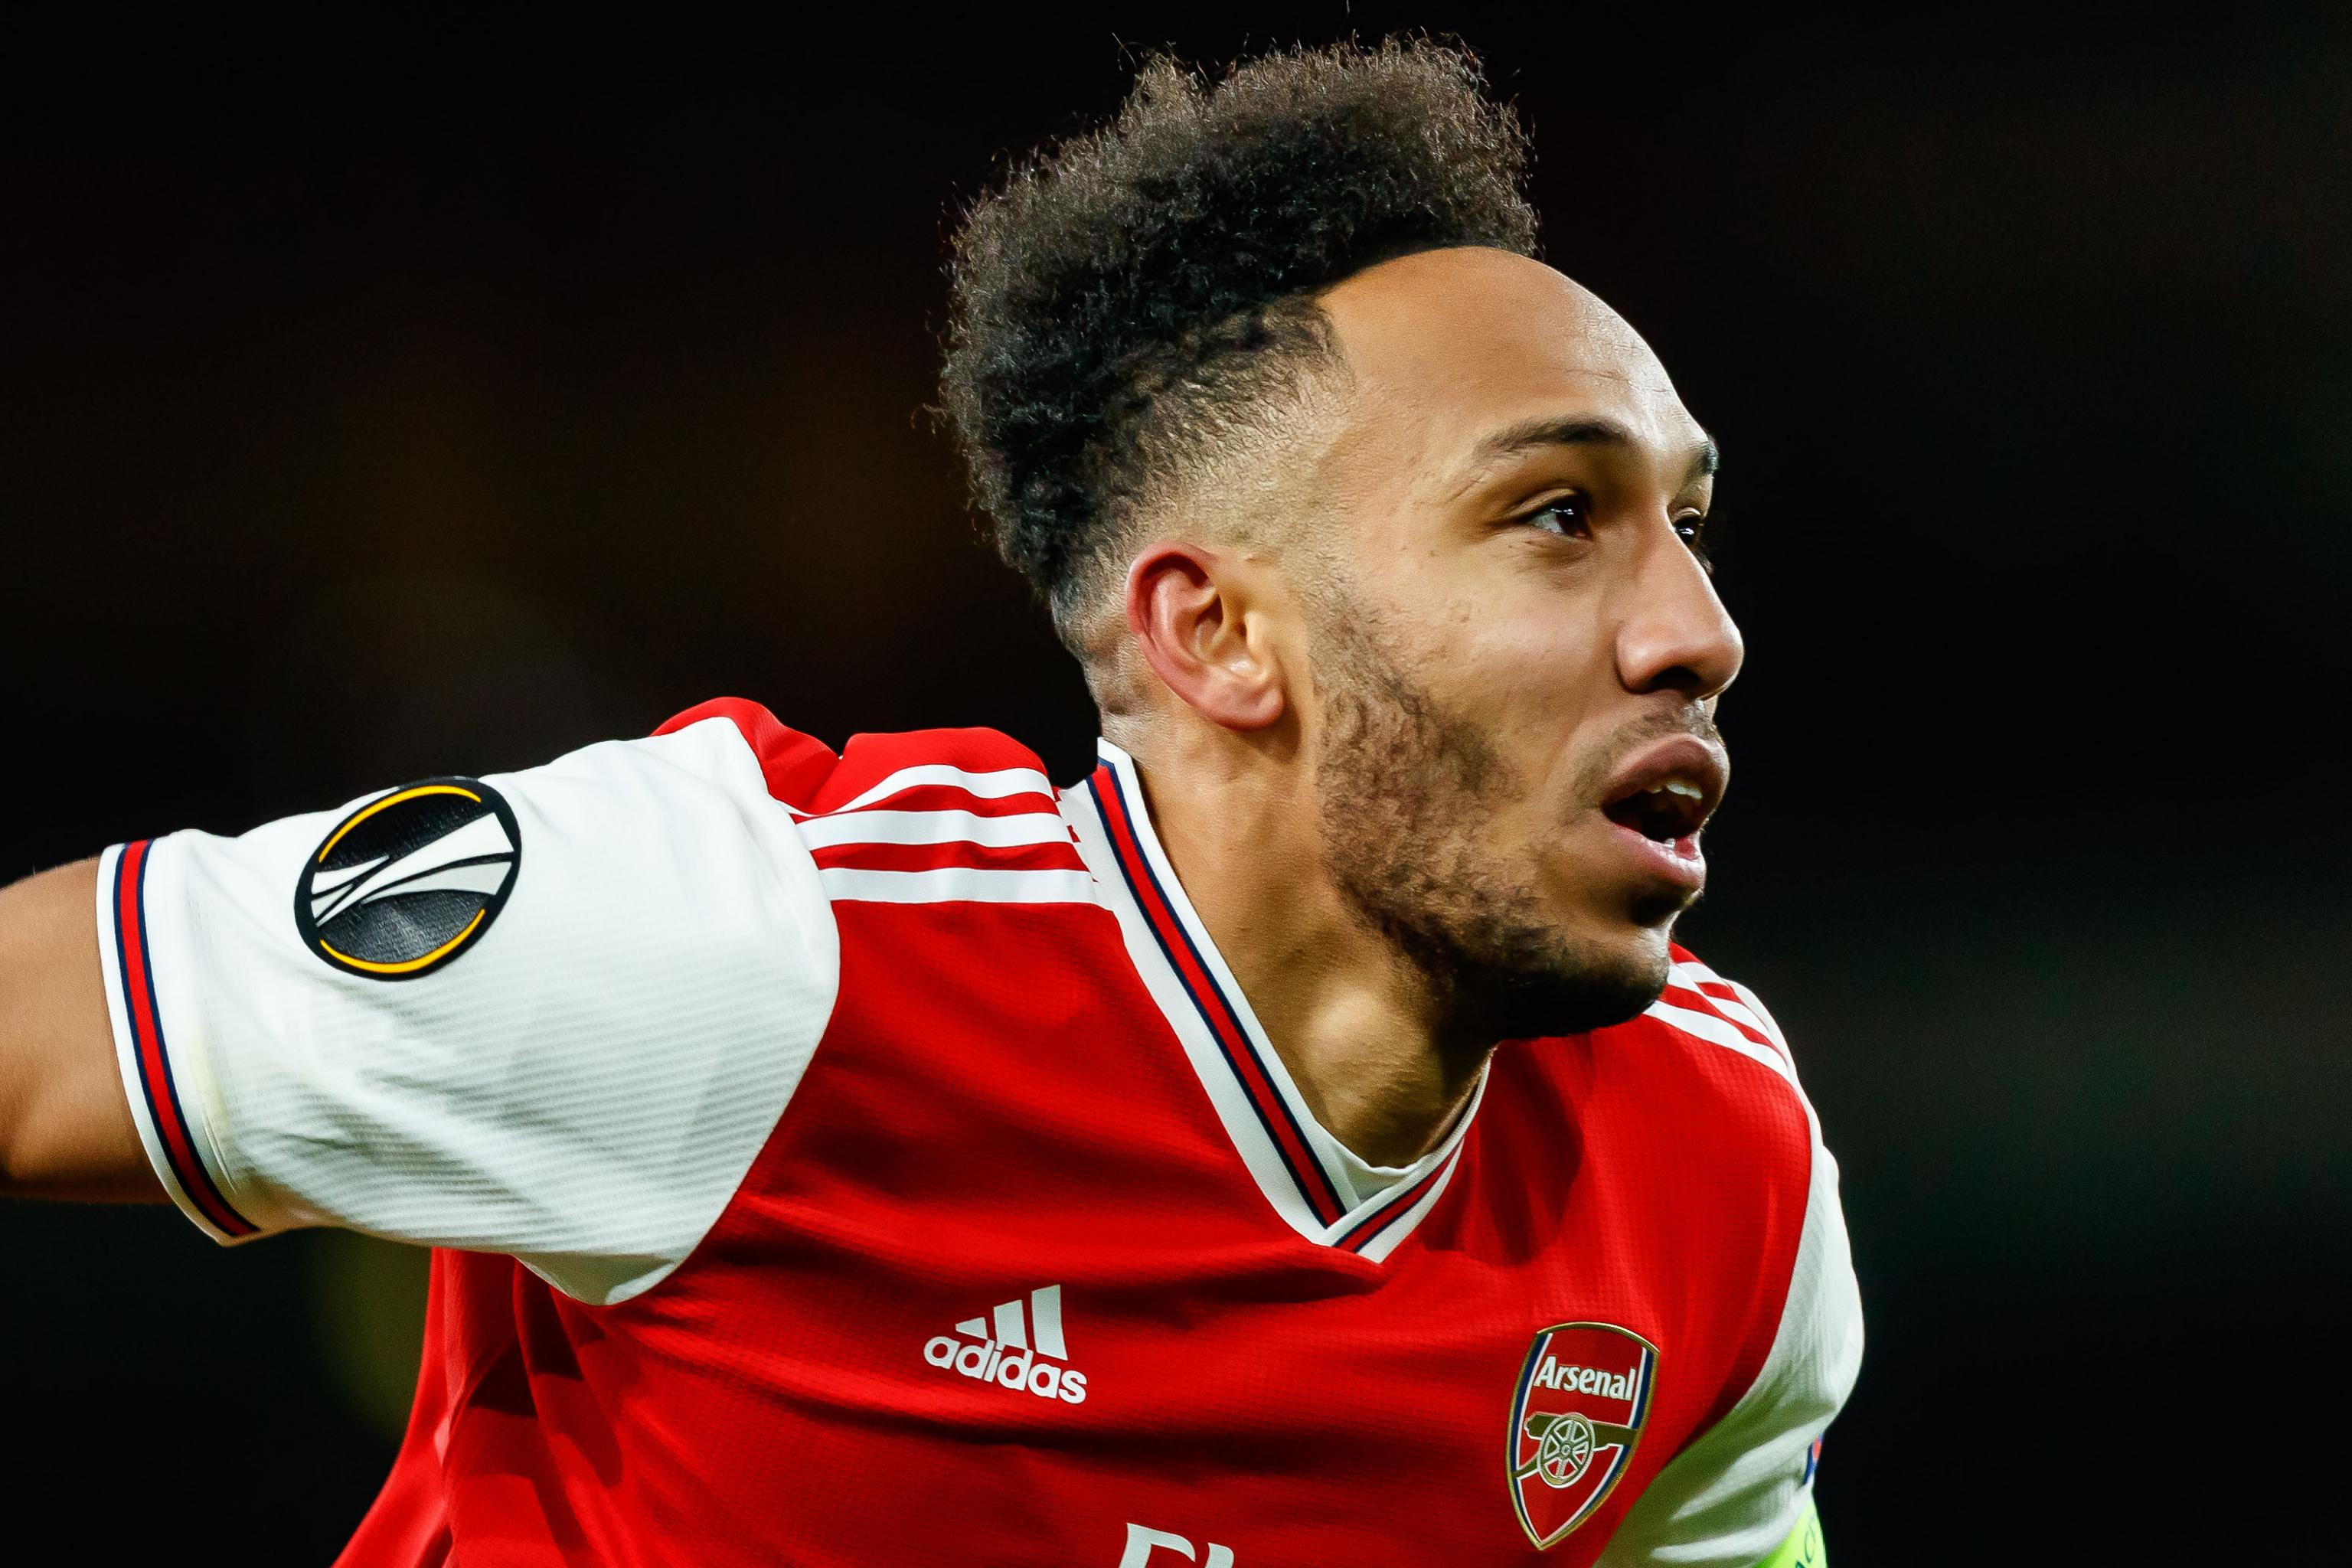 Man United fans react to aubameyang transfer - Bóng Đá